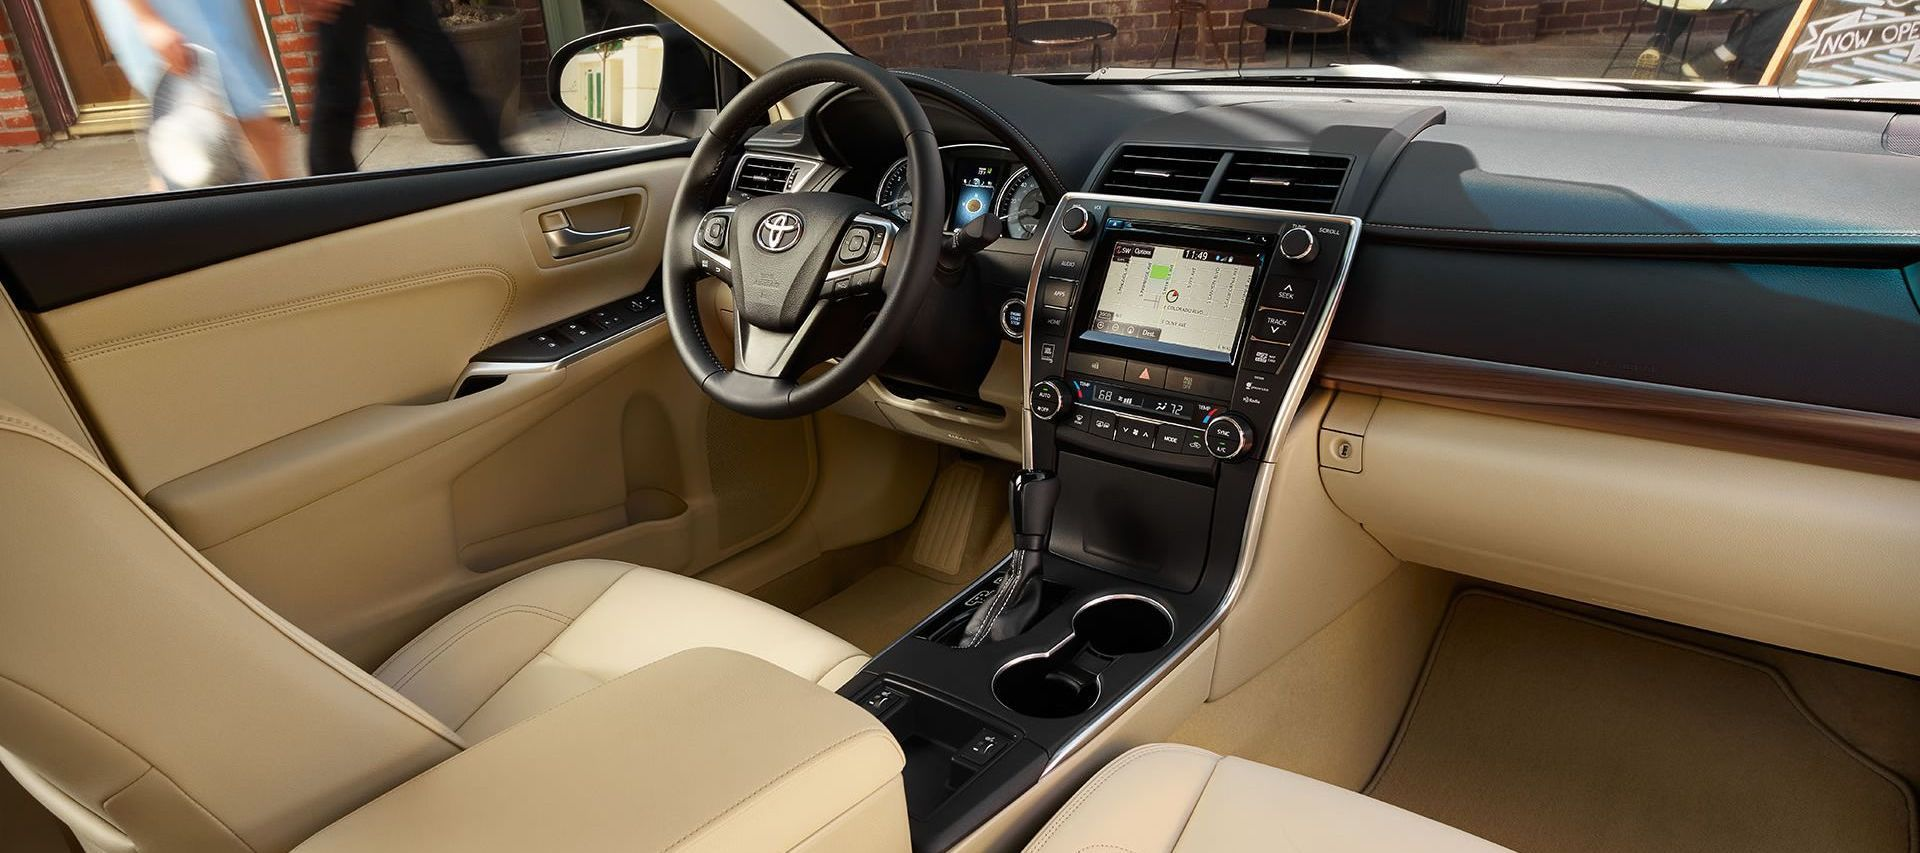 Comfortable and Secure Interior of the 2017 Camry